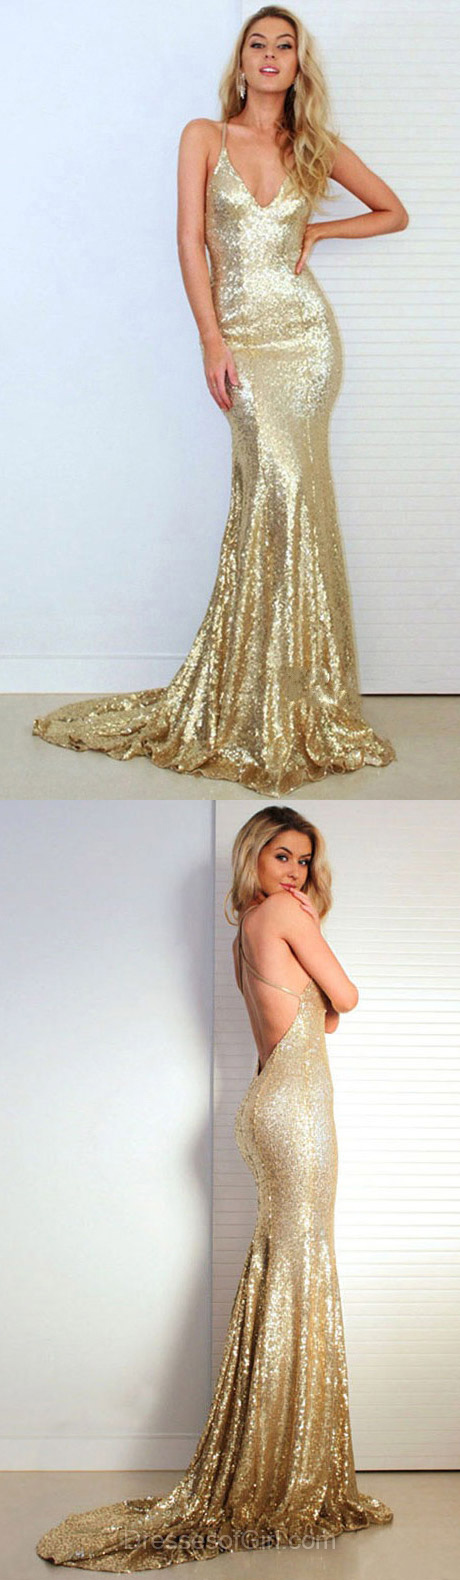 Hot Gold Backless Prom Dresses, Trumpet/Mermaid V-neck Evening Party Gowns, Sequined Sweep Train Ruffles Formal Dresses